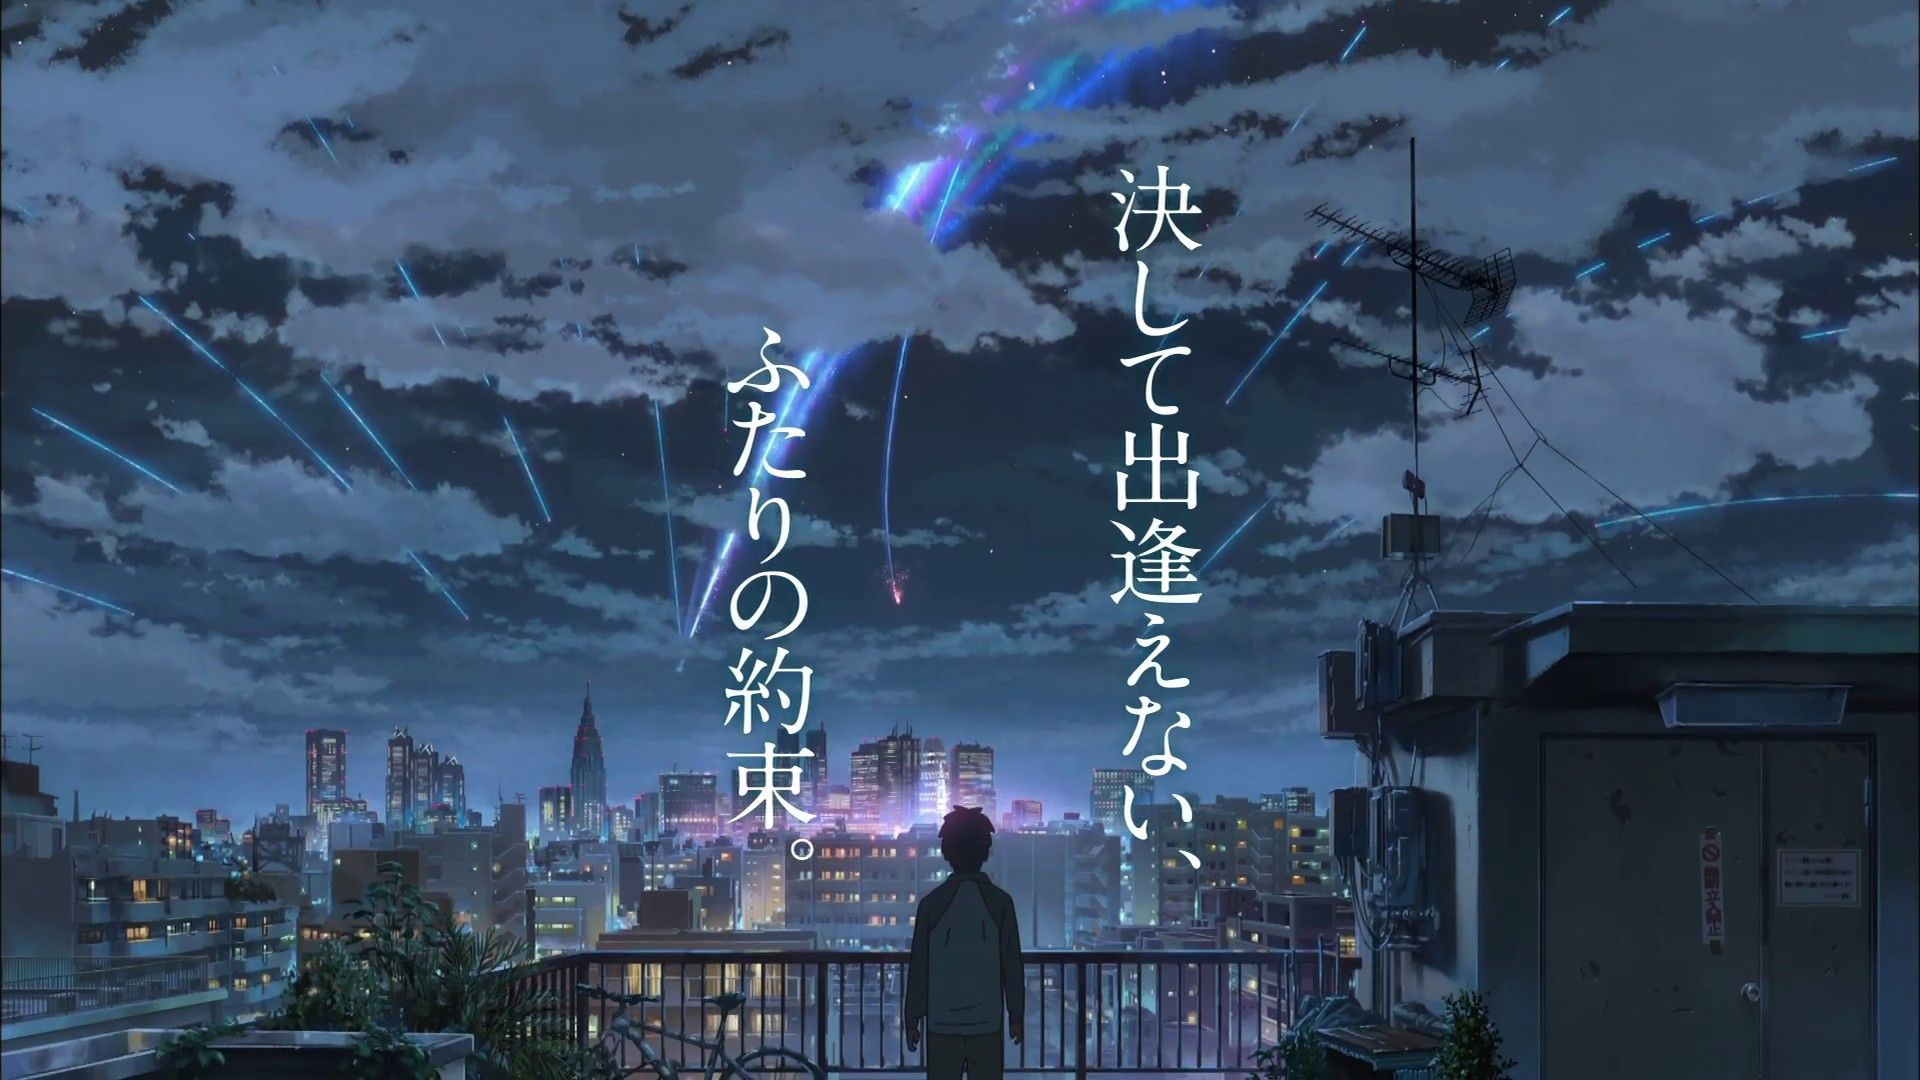 Kimi No Na Wa Wallpaper 1920x1080 4k Cenario Anime Papel De